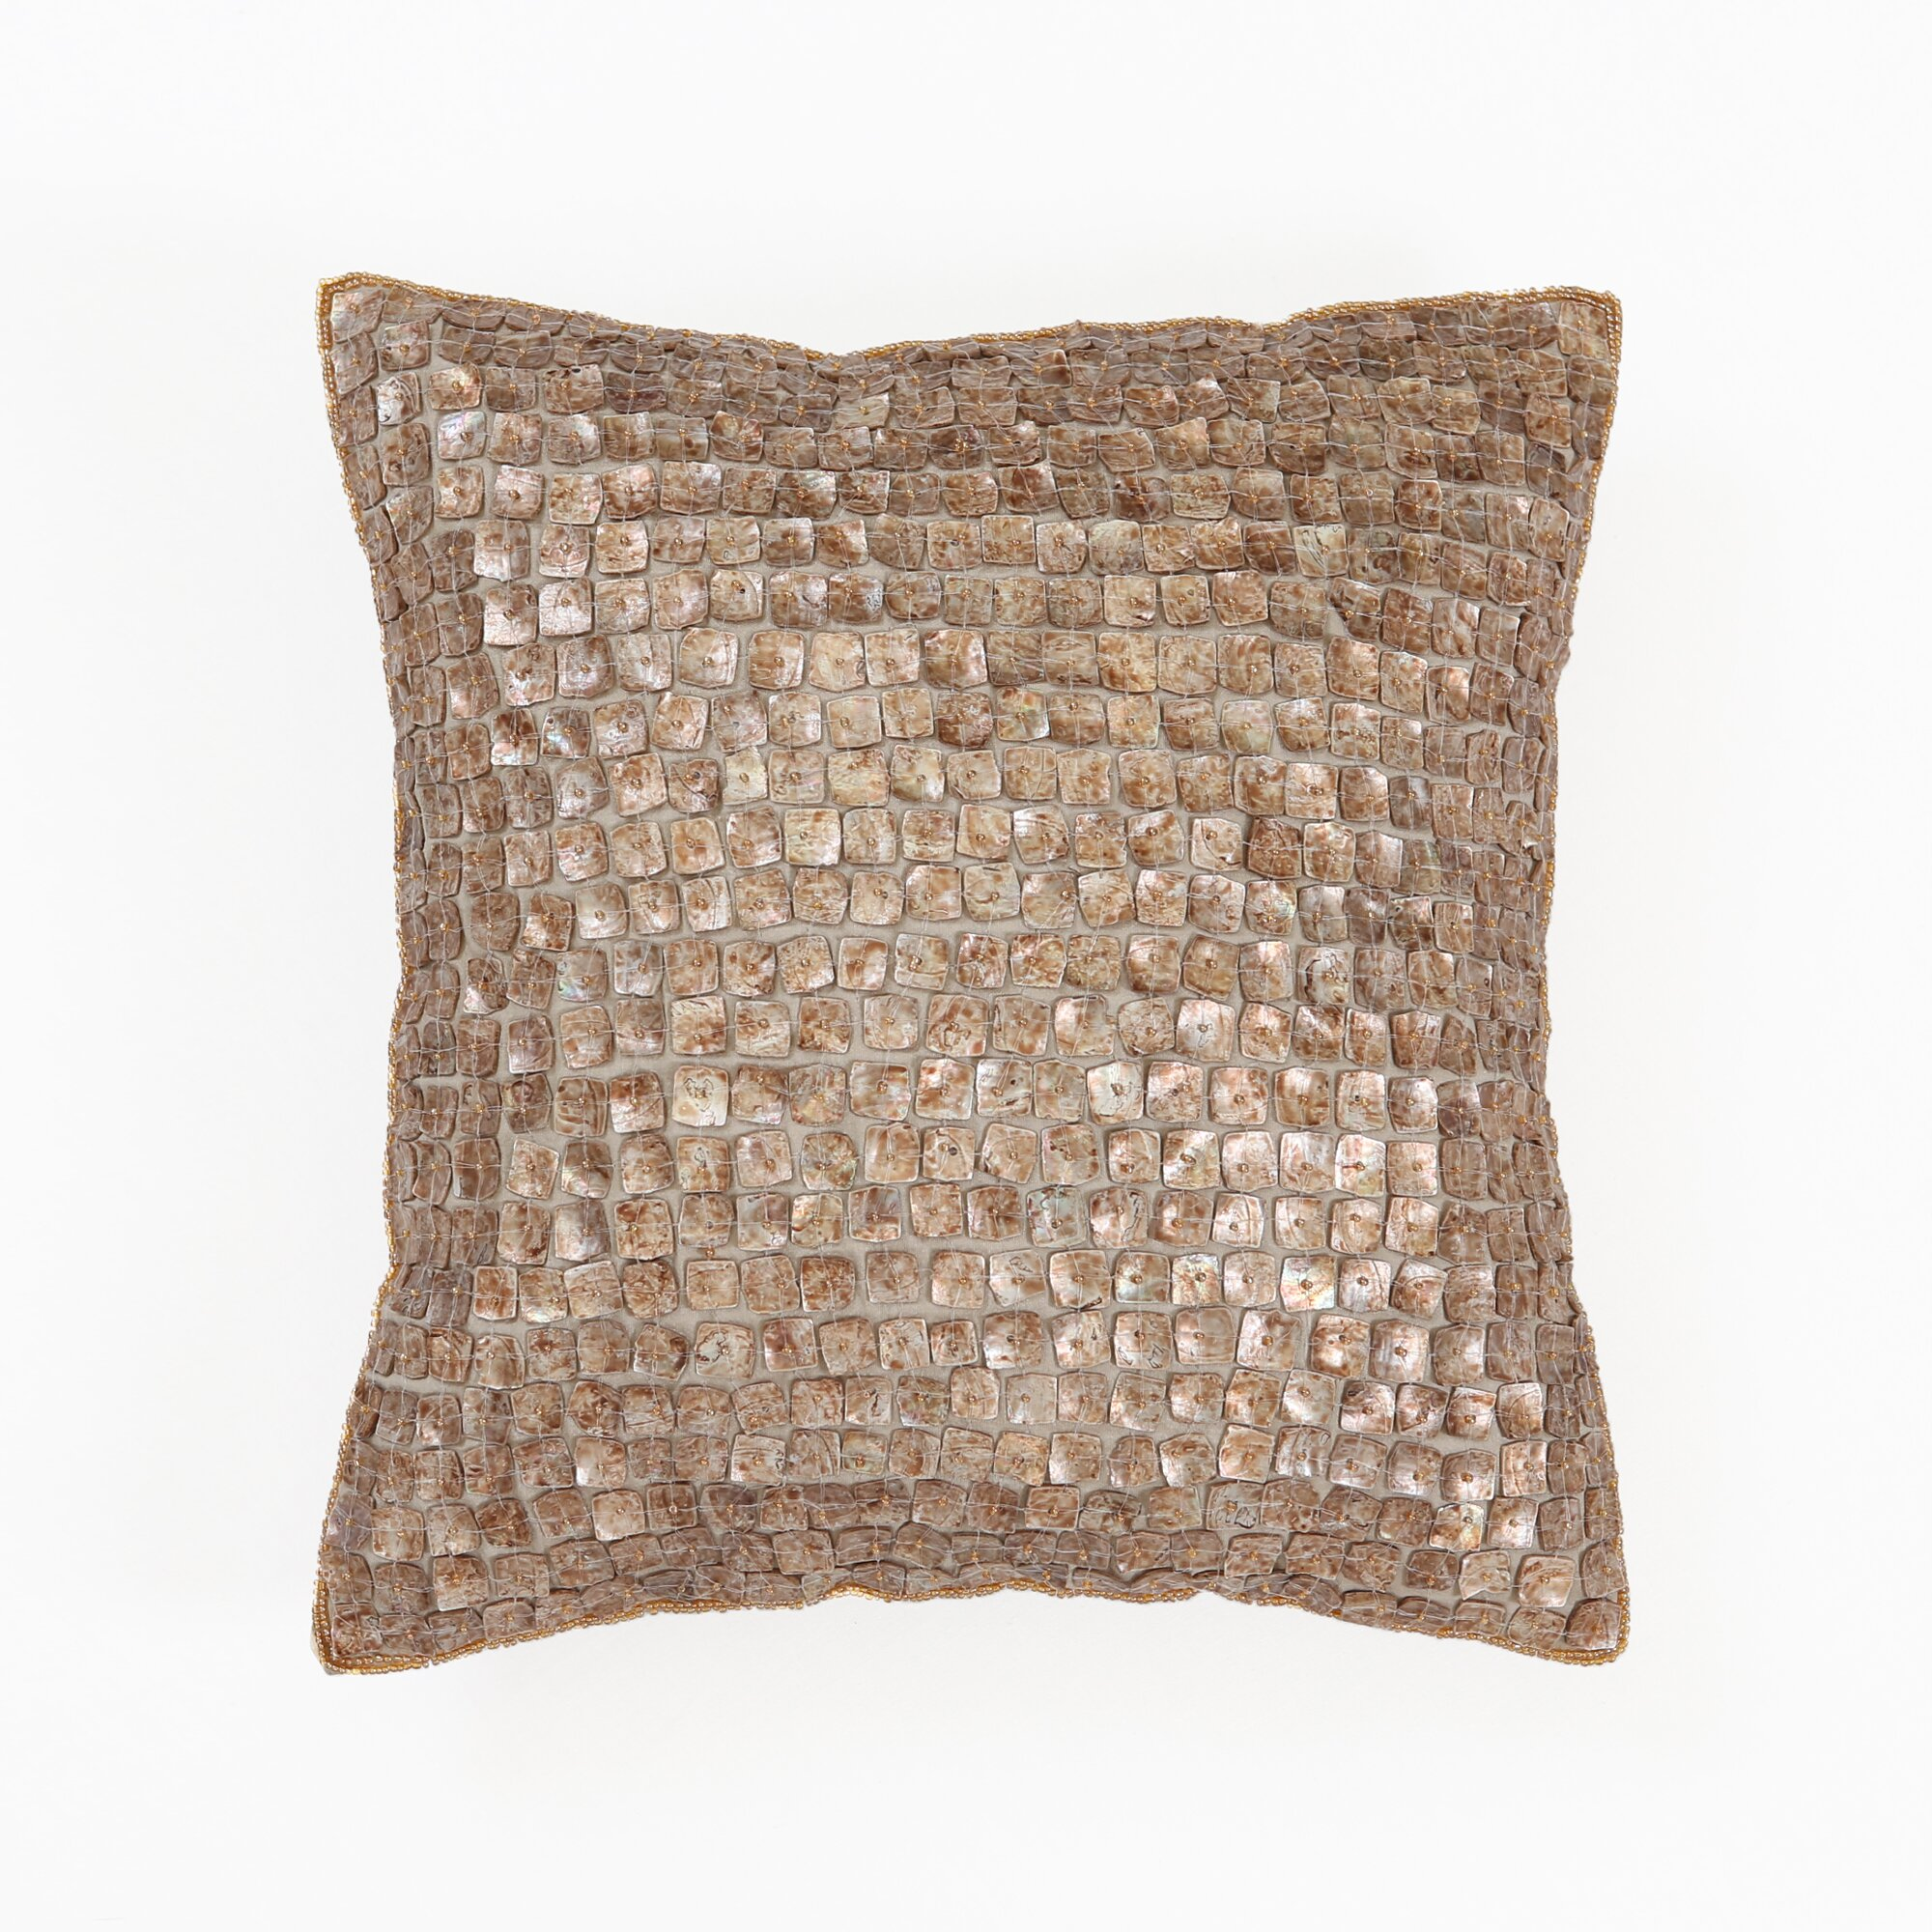 King Mother Of Pearl Headboard By The Yard: Best Home Fashion, Inc. Mother Of Pearl Pillow Cover